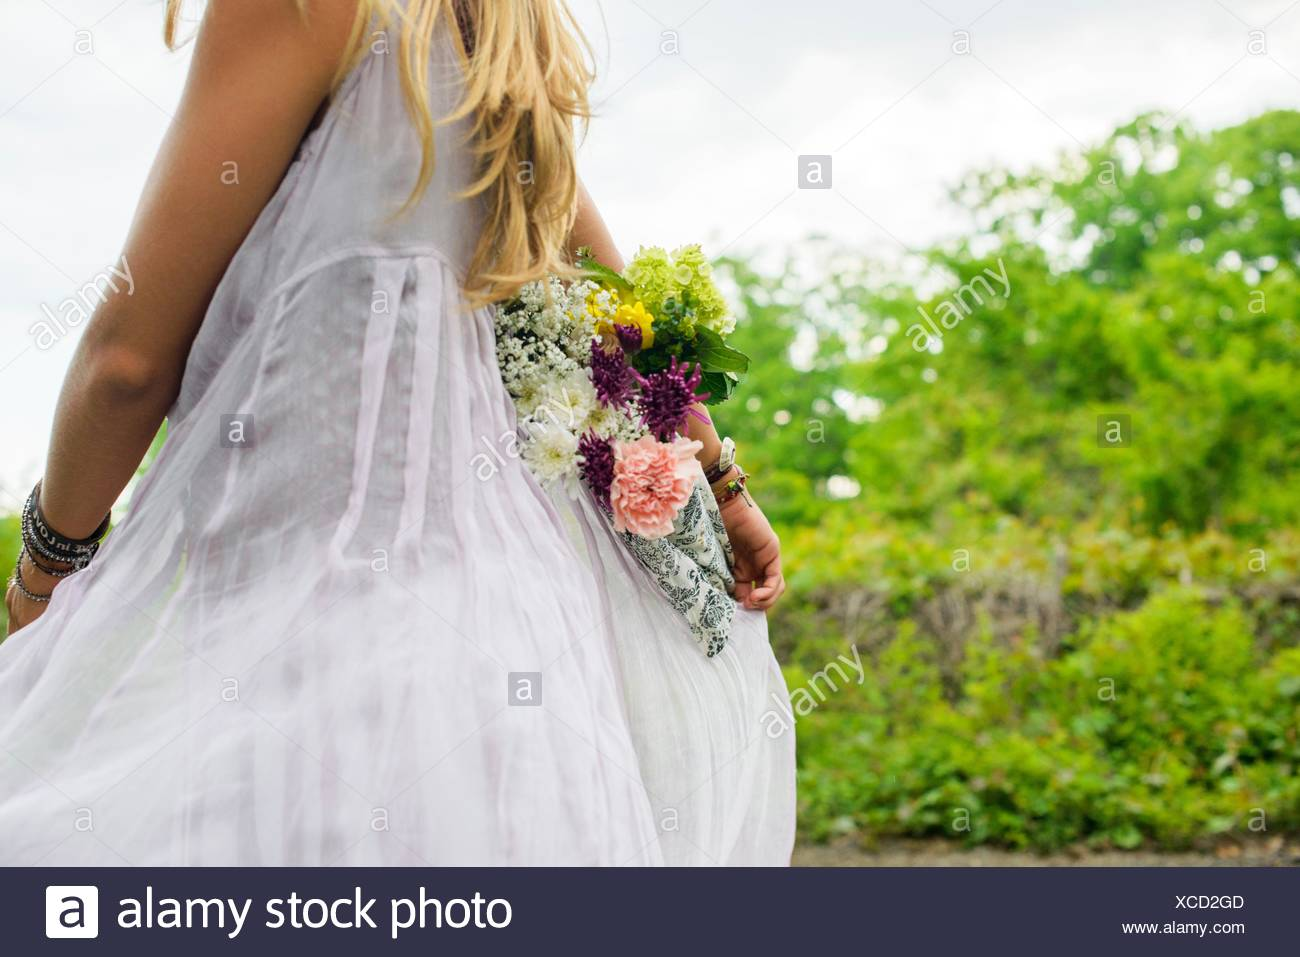 Cropped shot of young woman wearing white dress carrying bunch of flowers behind her back - Stock Image